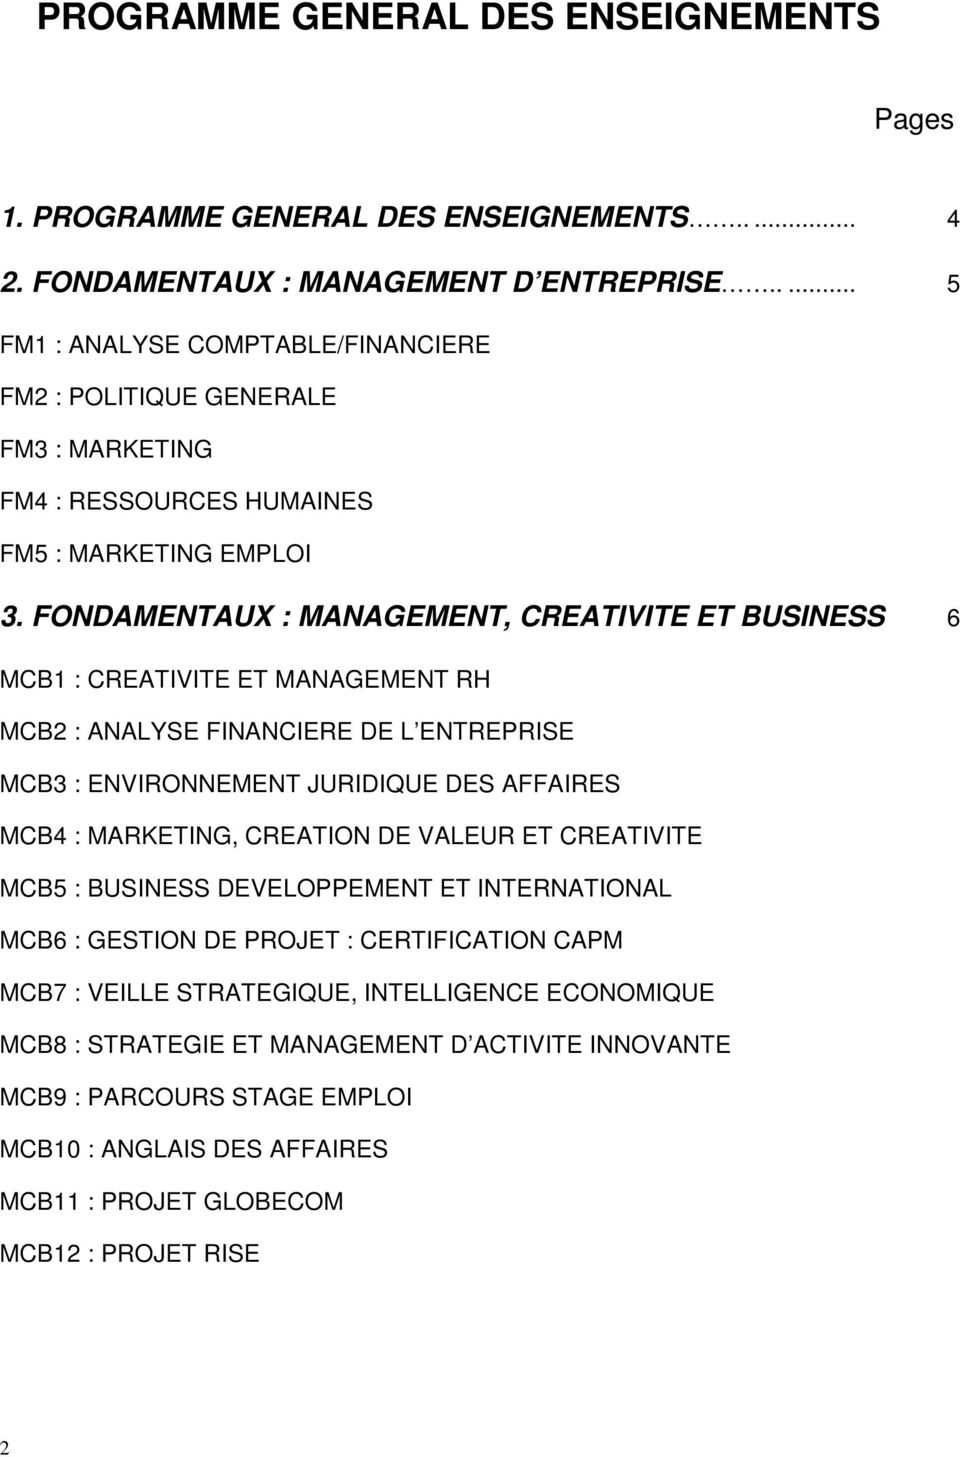 FONDAMENTAUX : MANAGEMENT, CREATIVITE ET BUSINESS 6 MCB1 : CREATIVITE ET MANAGEMENT RH MCB2 : ANALYSE FINANCIERE DE L ENTREPRISE MCB3 : ENVIRONNEMENT JURIDIQUE DES AFFAIRES MCB4 : MARKETING,